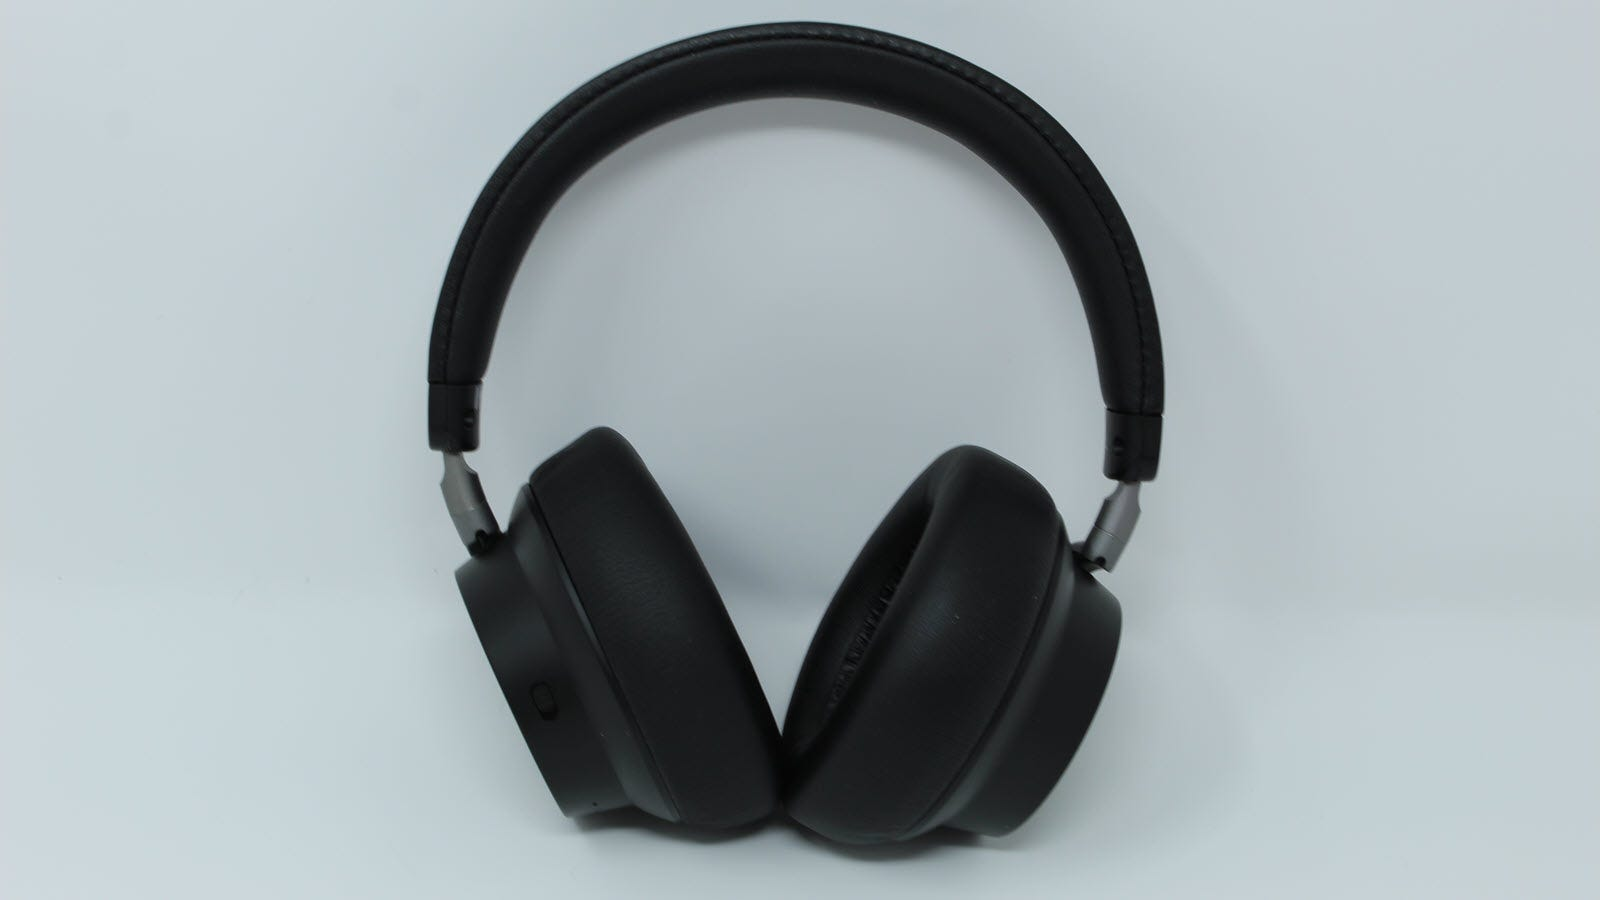 The headphones standing up from the front.